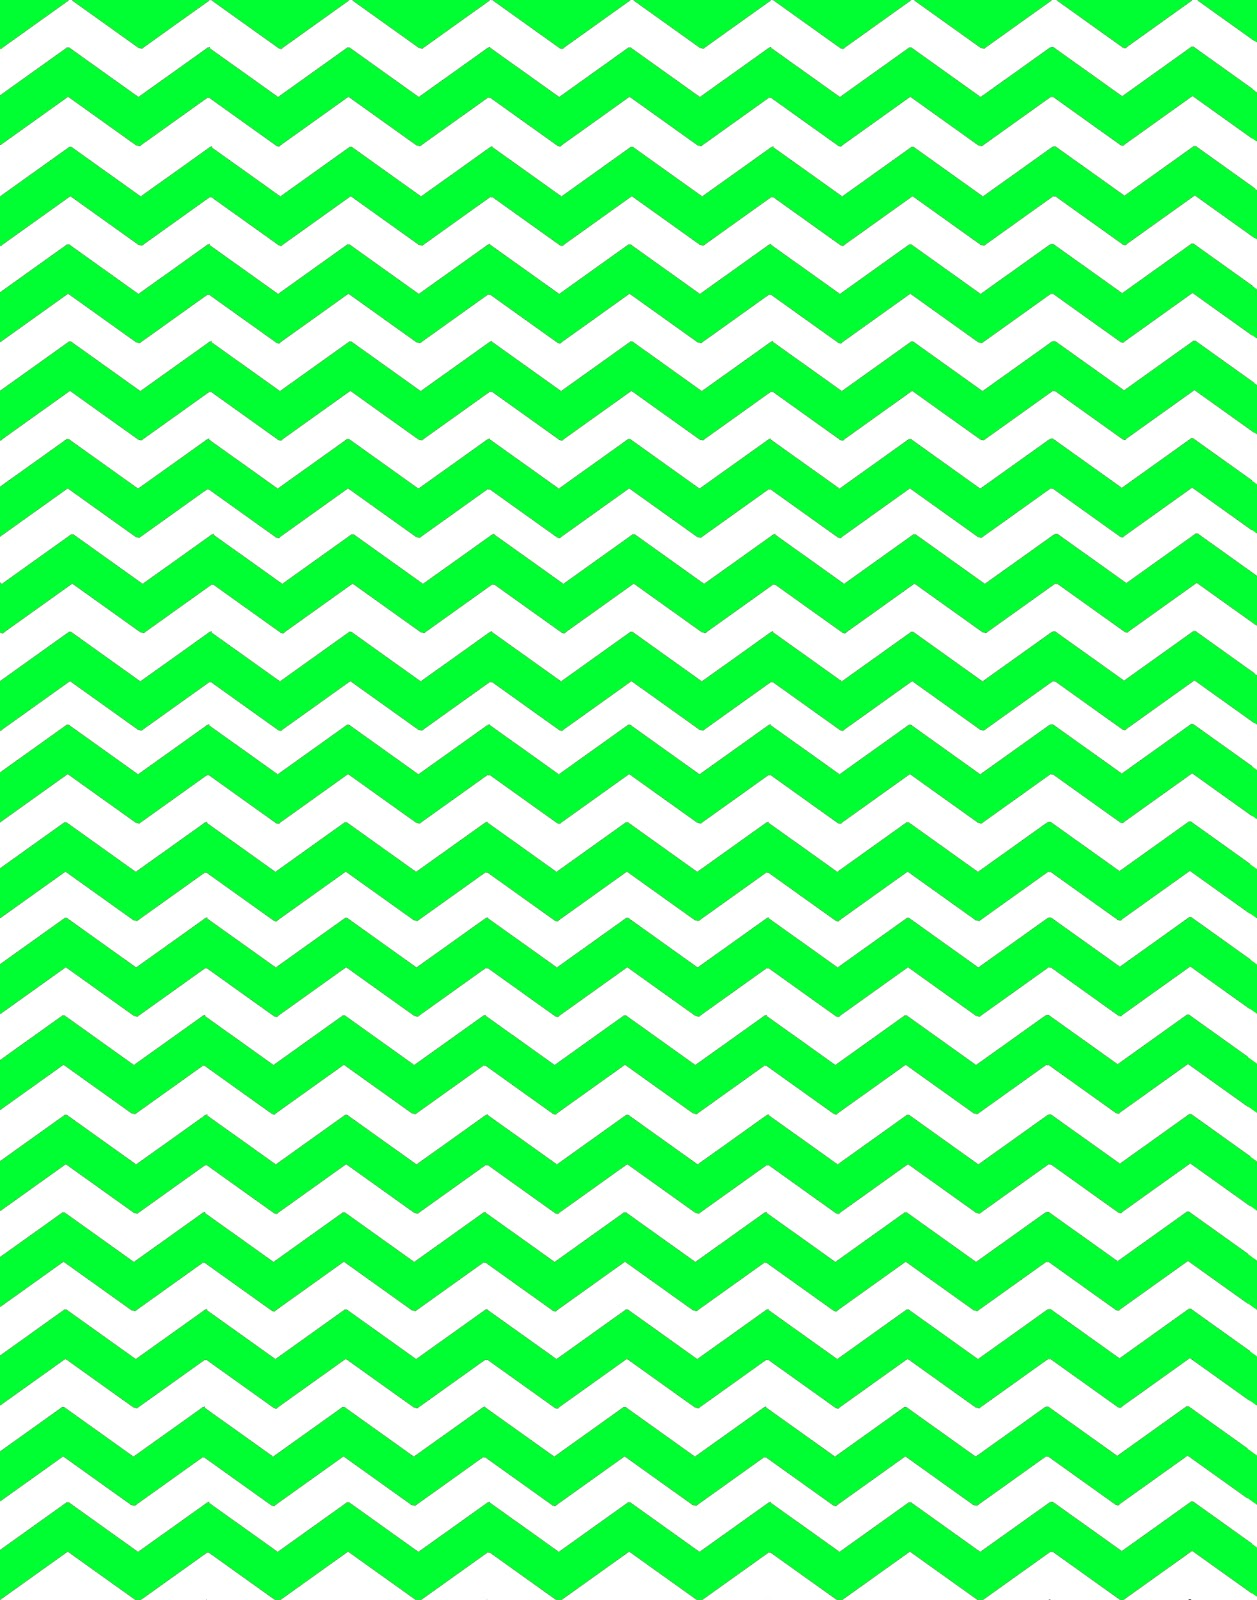 16 New Colors Chevron background patterns 1257x1600